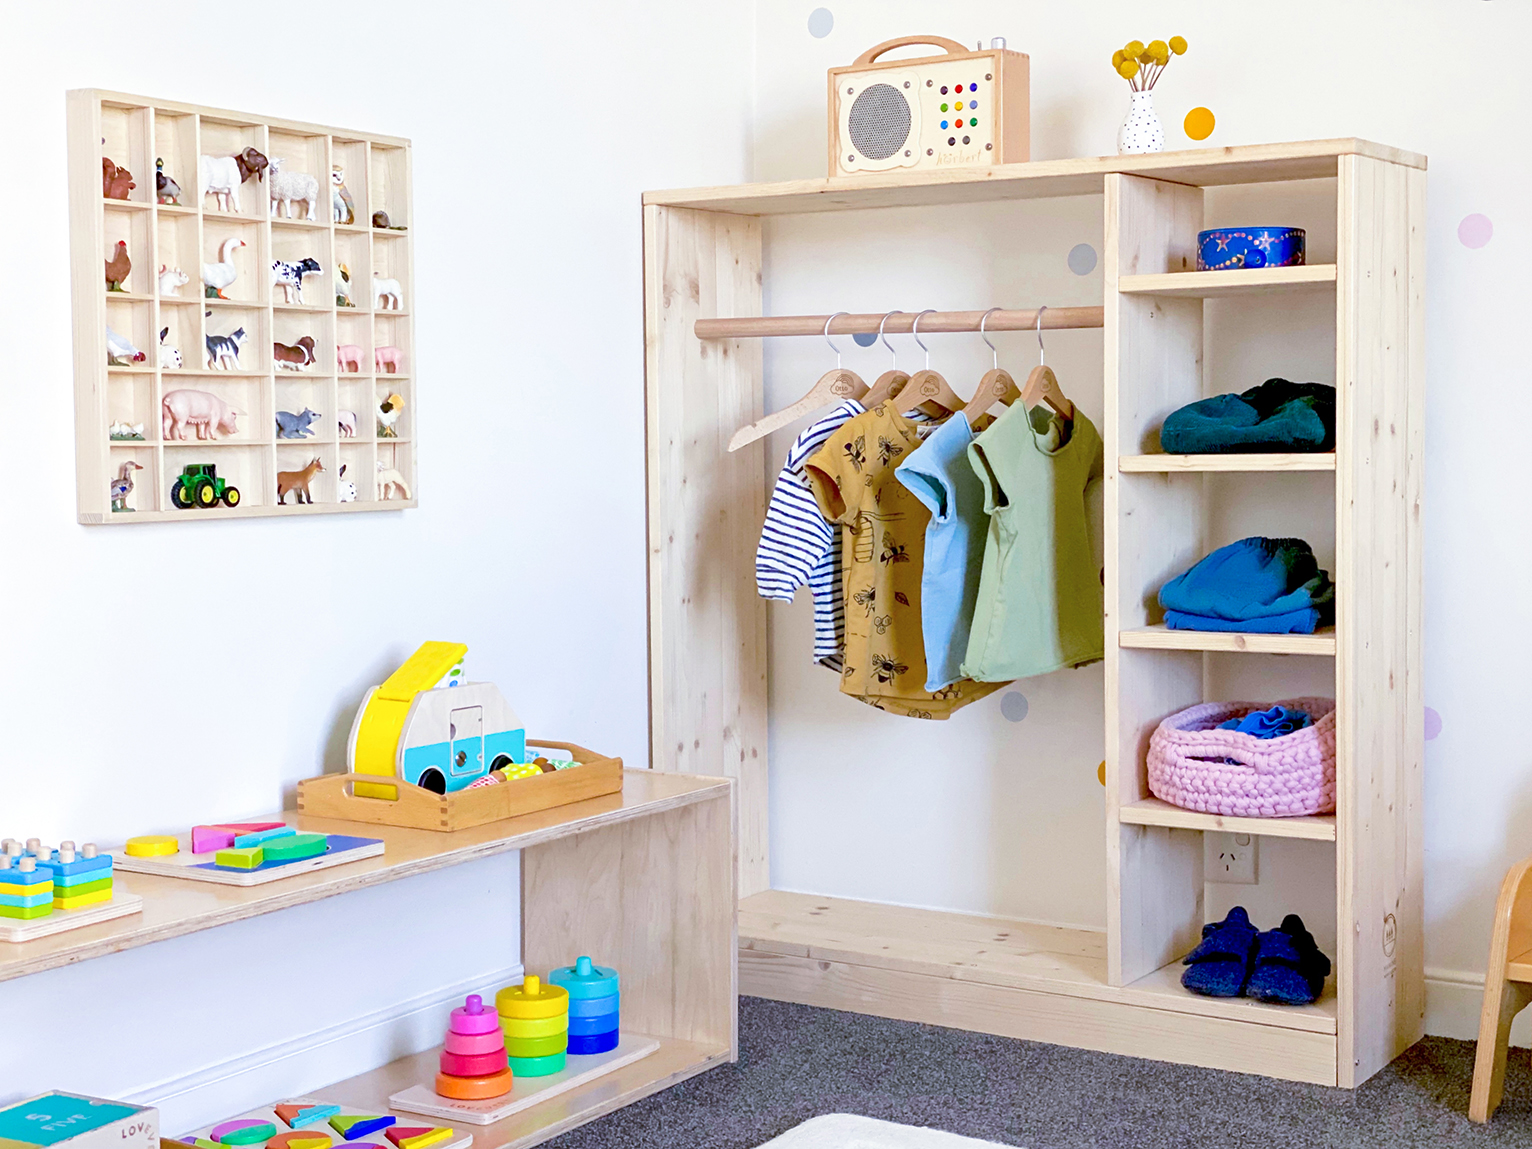 Montessori bedroom with built in closet and table with colorful toys by Lovevery on top